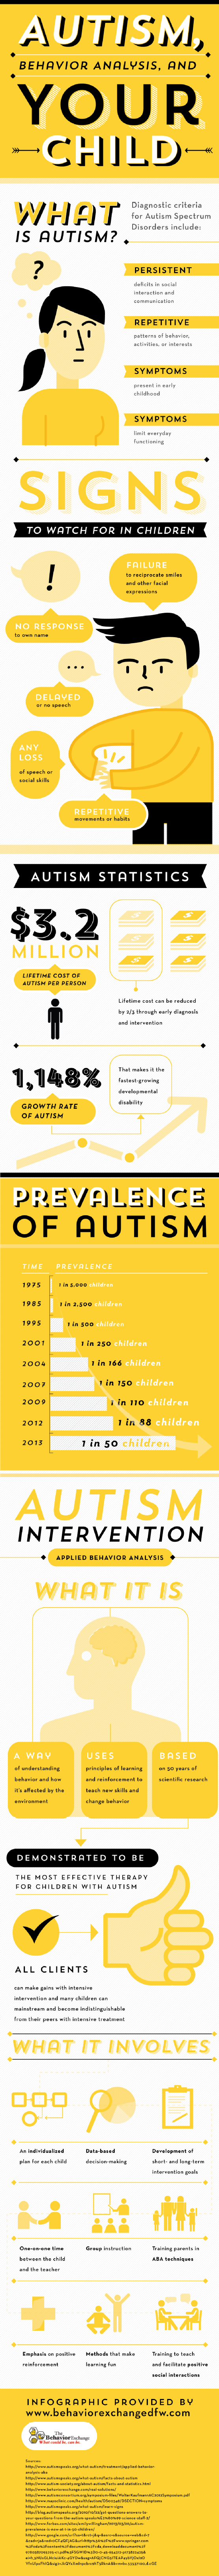 Autism-Behavior-Analysis-And-Your-Child-Infographic